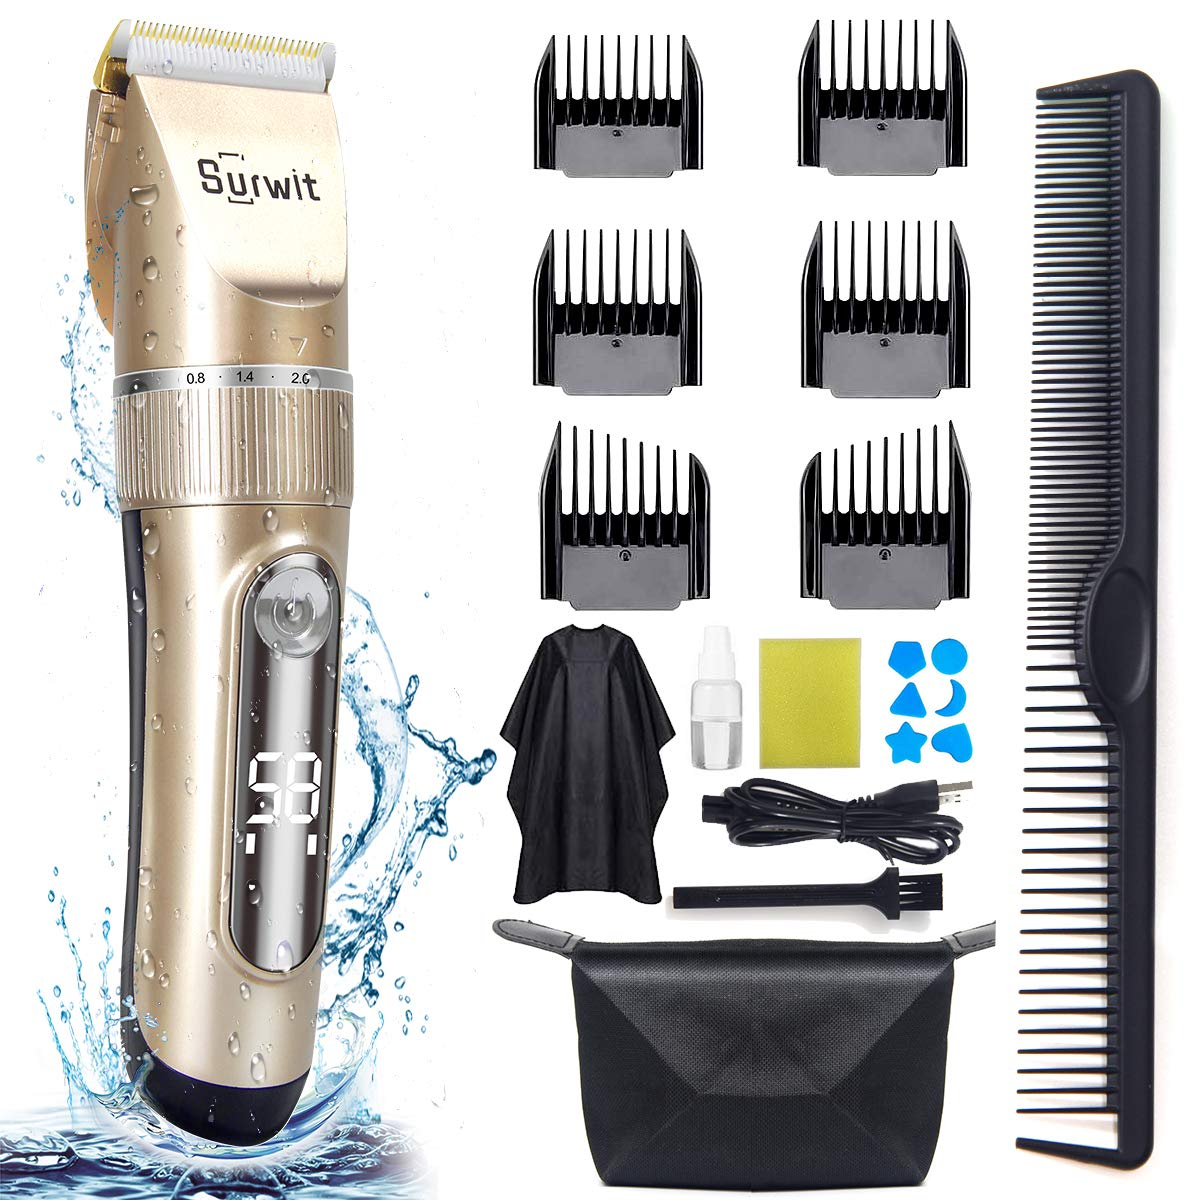 Amazon Com Cordless Hair Clippers For Men Surwit Professional Hair Clippers Trimmer For Hair Cut Ipx7 Waterproof Barber Clippers Usb Electric Rechargeable Grooming Kit With Extra 19 Accessories Beauty